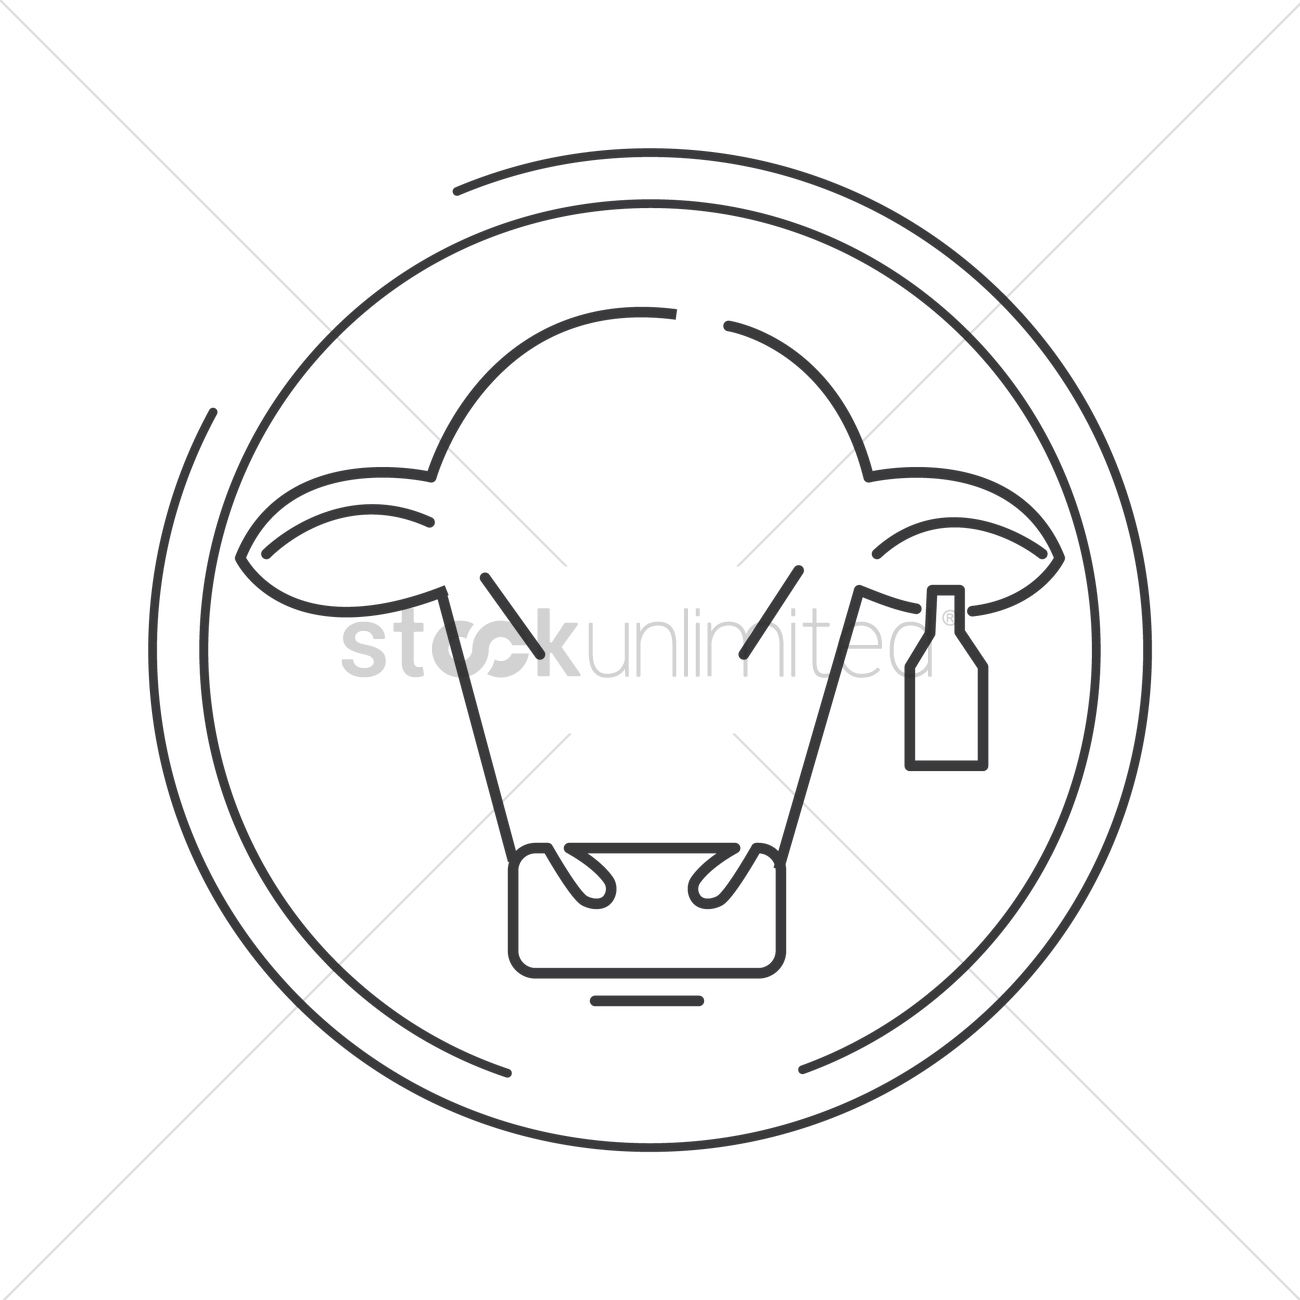 Cow Vector Image - 2034563 | StockUnlimited